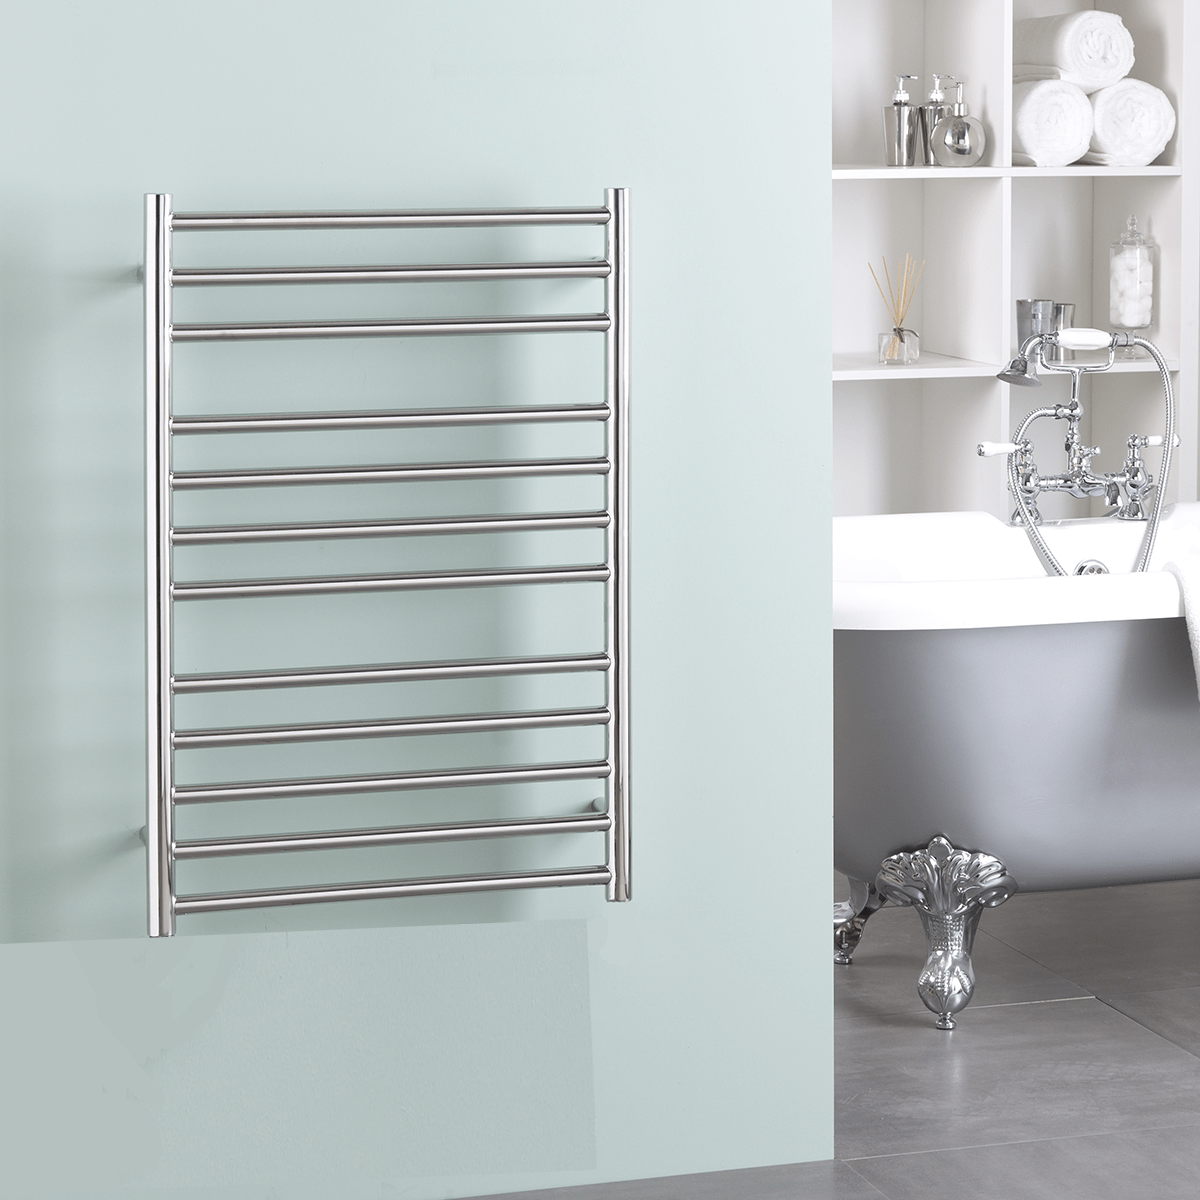 1pc Heated Towel Rail Holder Bathroom Accessories Towel: BRADDAN Stainless Steel Modern Heated Towel Rail Warmer